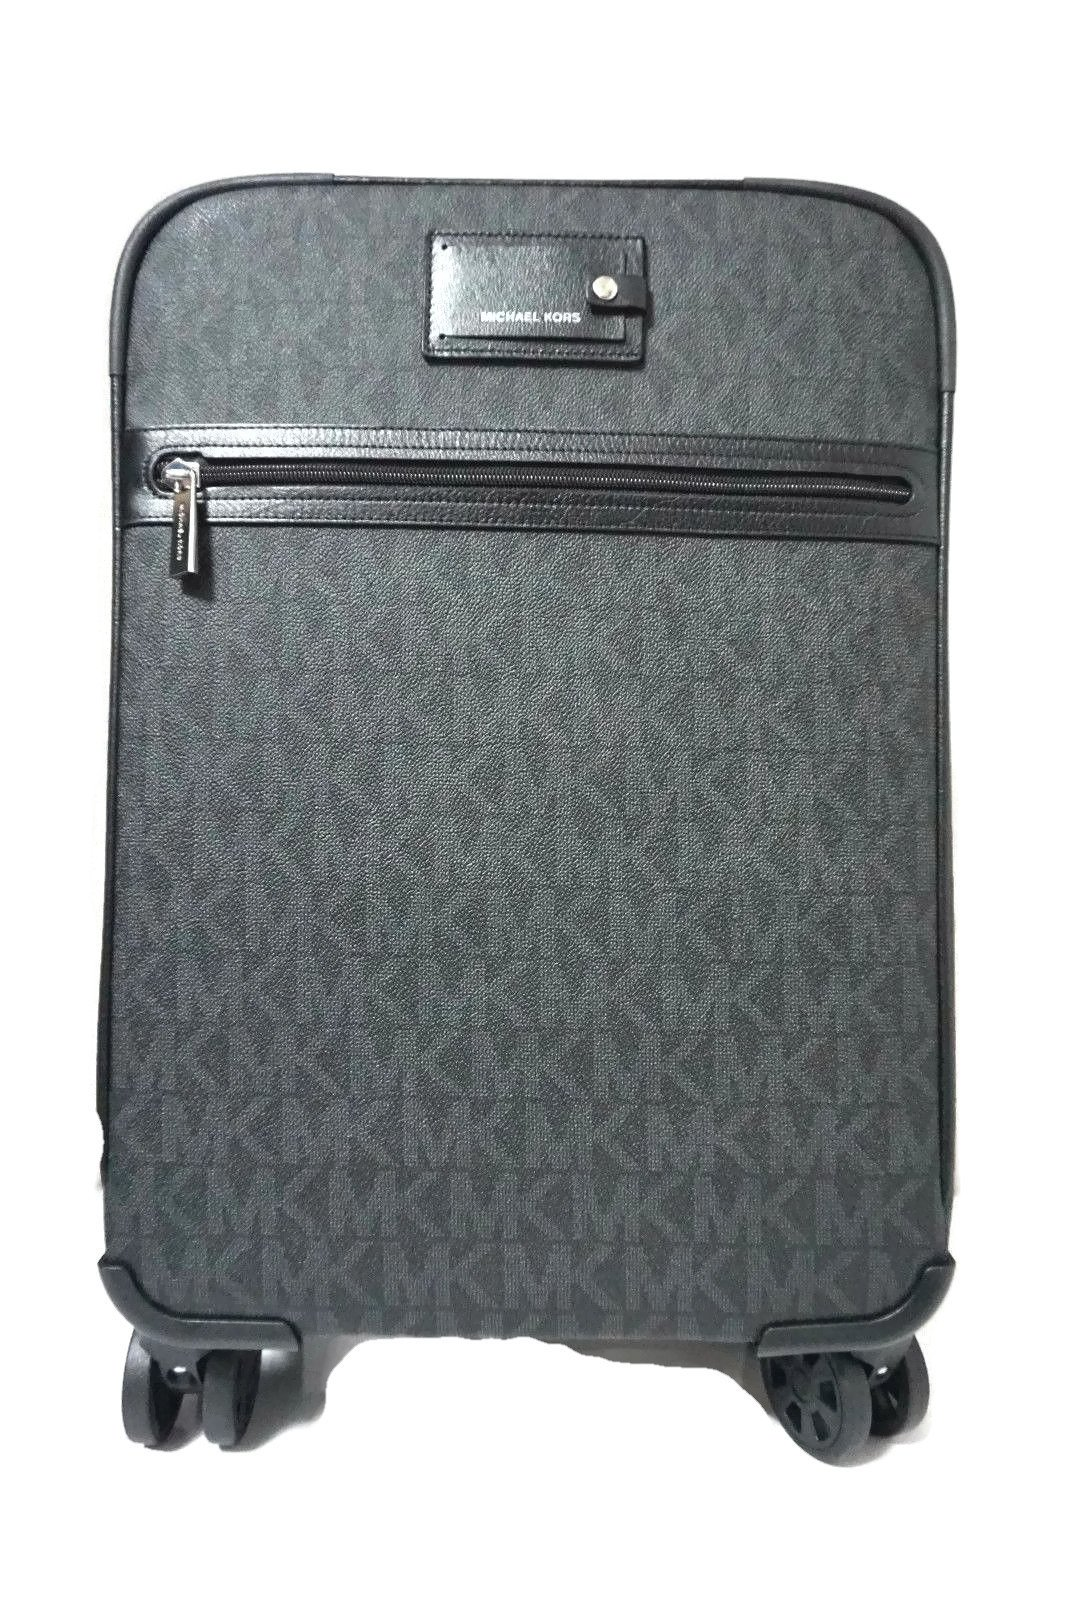 Michael Kors Signature Travel Trolley Rolling Carry On Suitcase (Black)